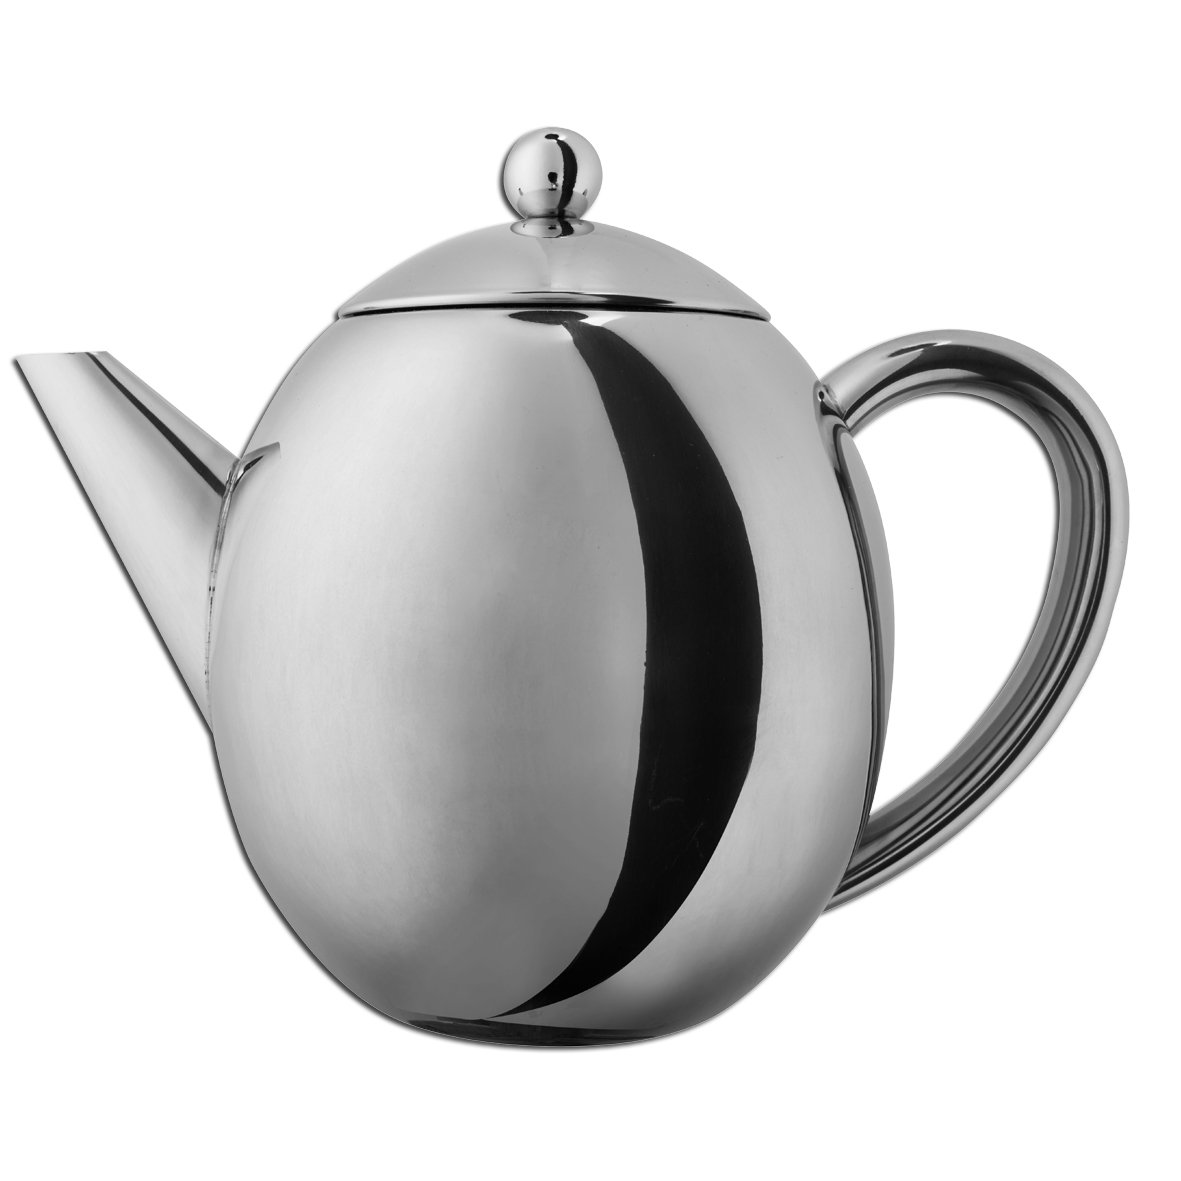 double walled insulated stainless steel thermal teapot  keep tea  - double walled insulated stainless steel thermal teapot  keep tea warmduring serving plus drip free pouring amazoncouk kitchen  home